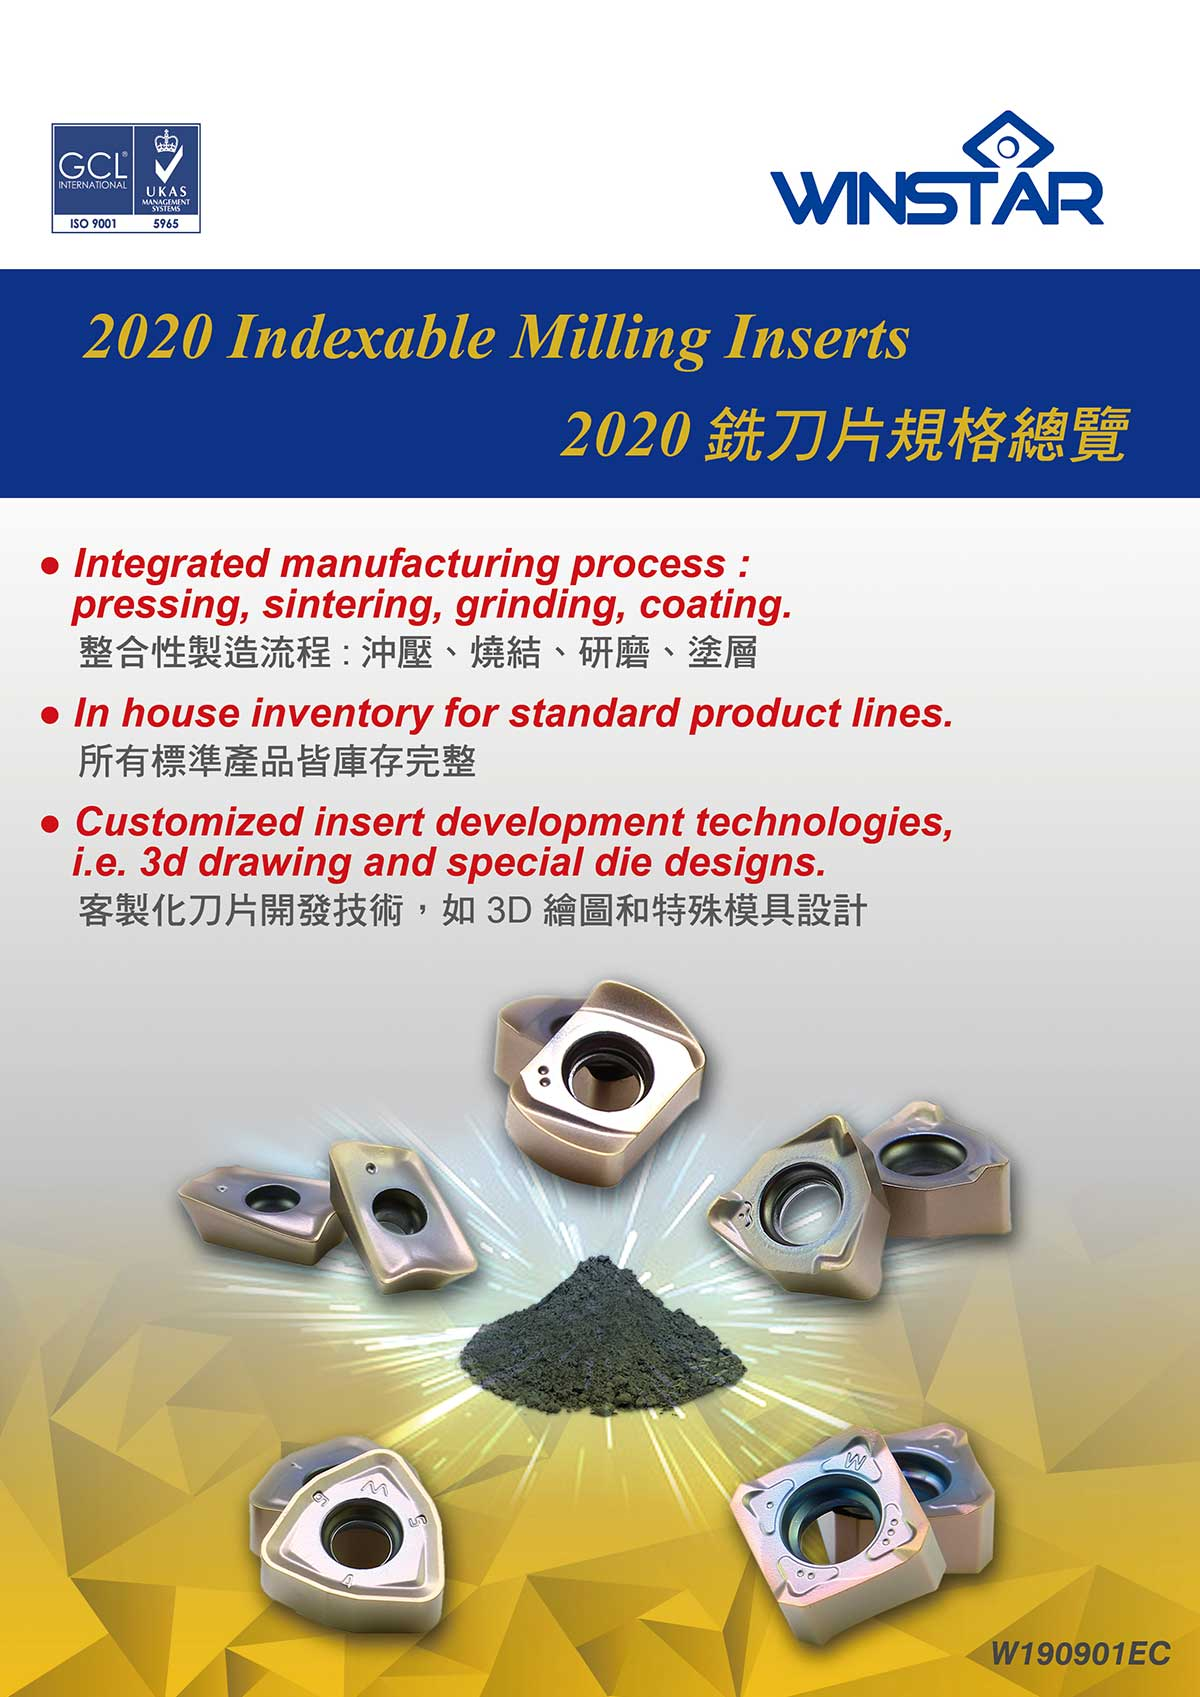 WINSTAR 2020 Indexable Milling Inserts